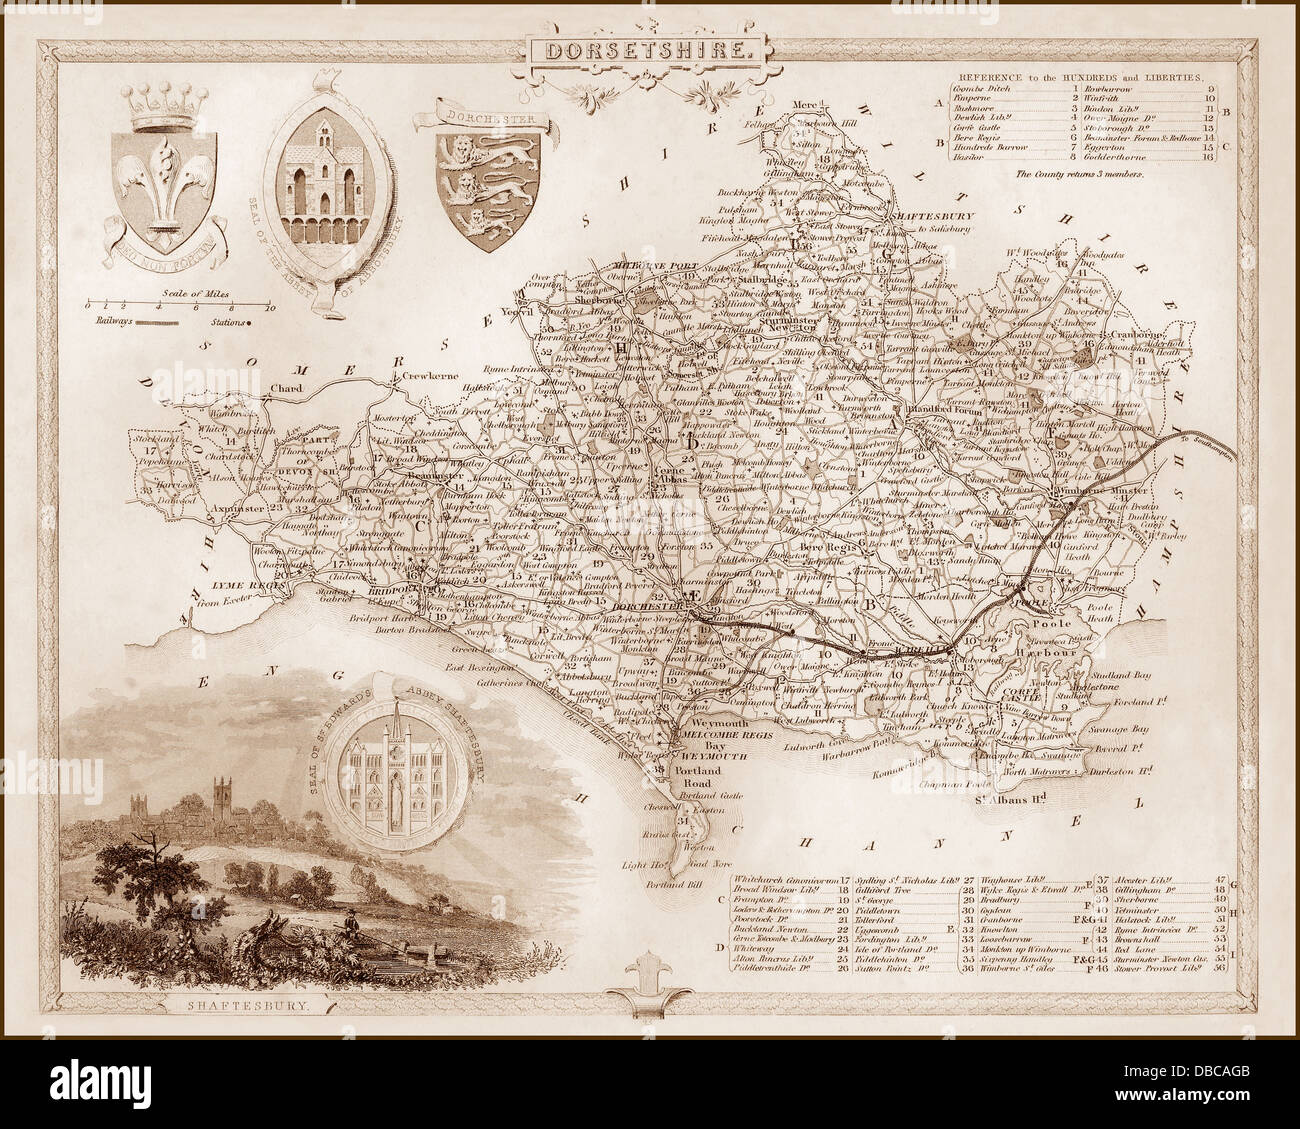 Antique County Map Of Dorsetshire By John Cary 1787 Old Plan Chart And Digestion Helping Europe Maps